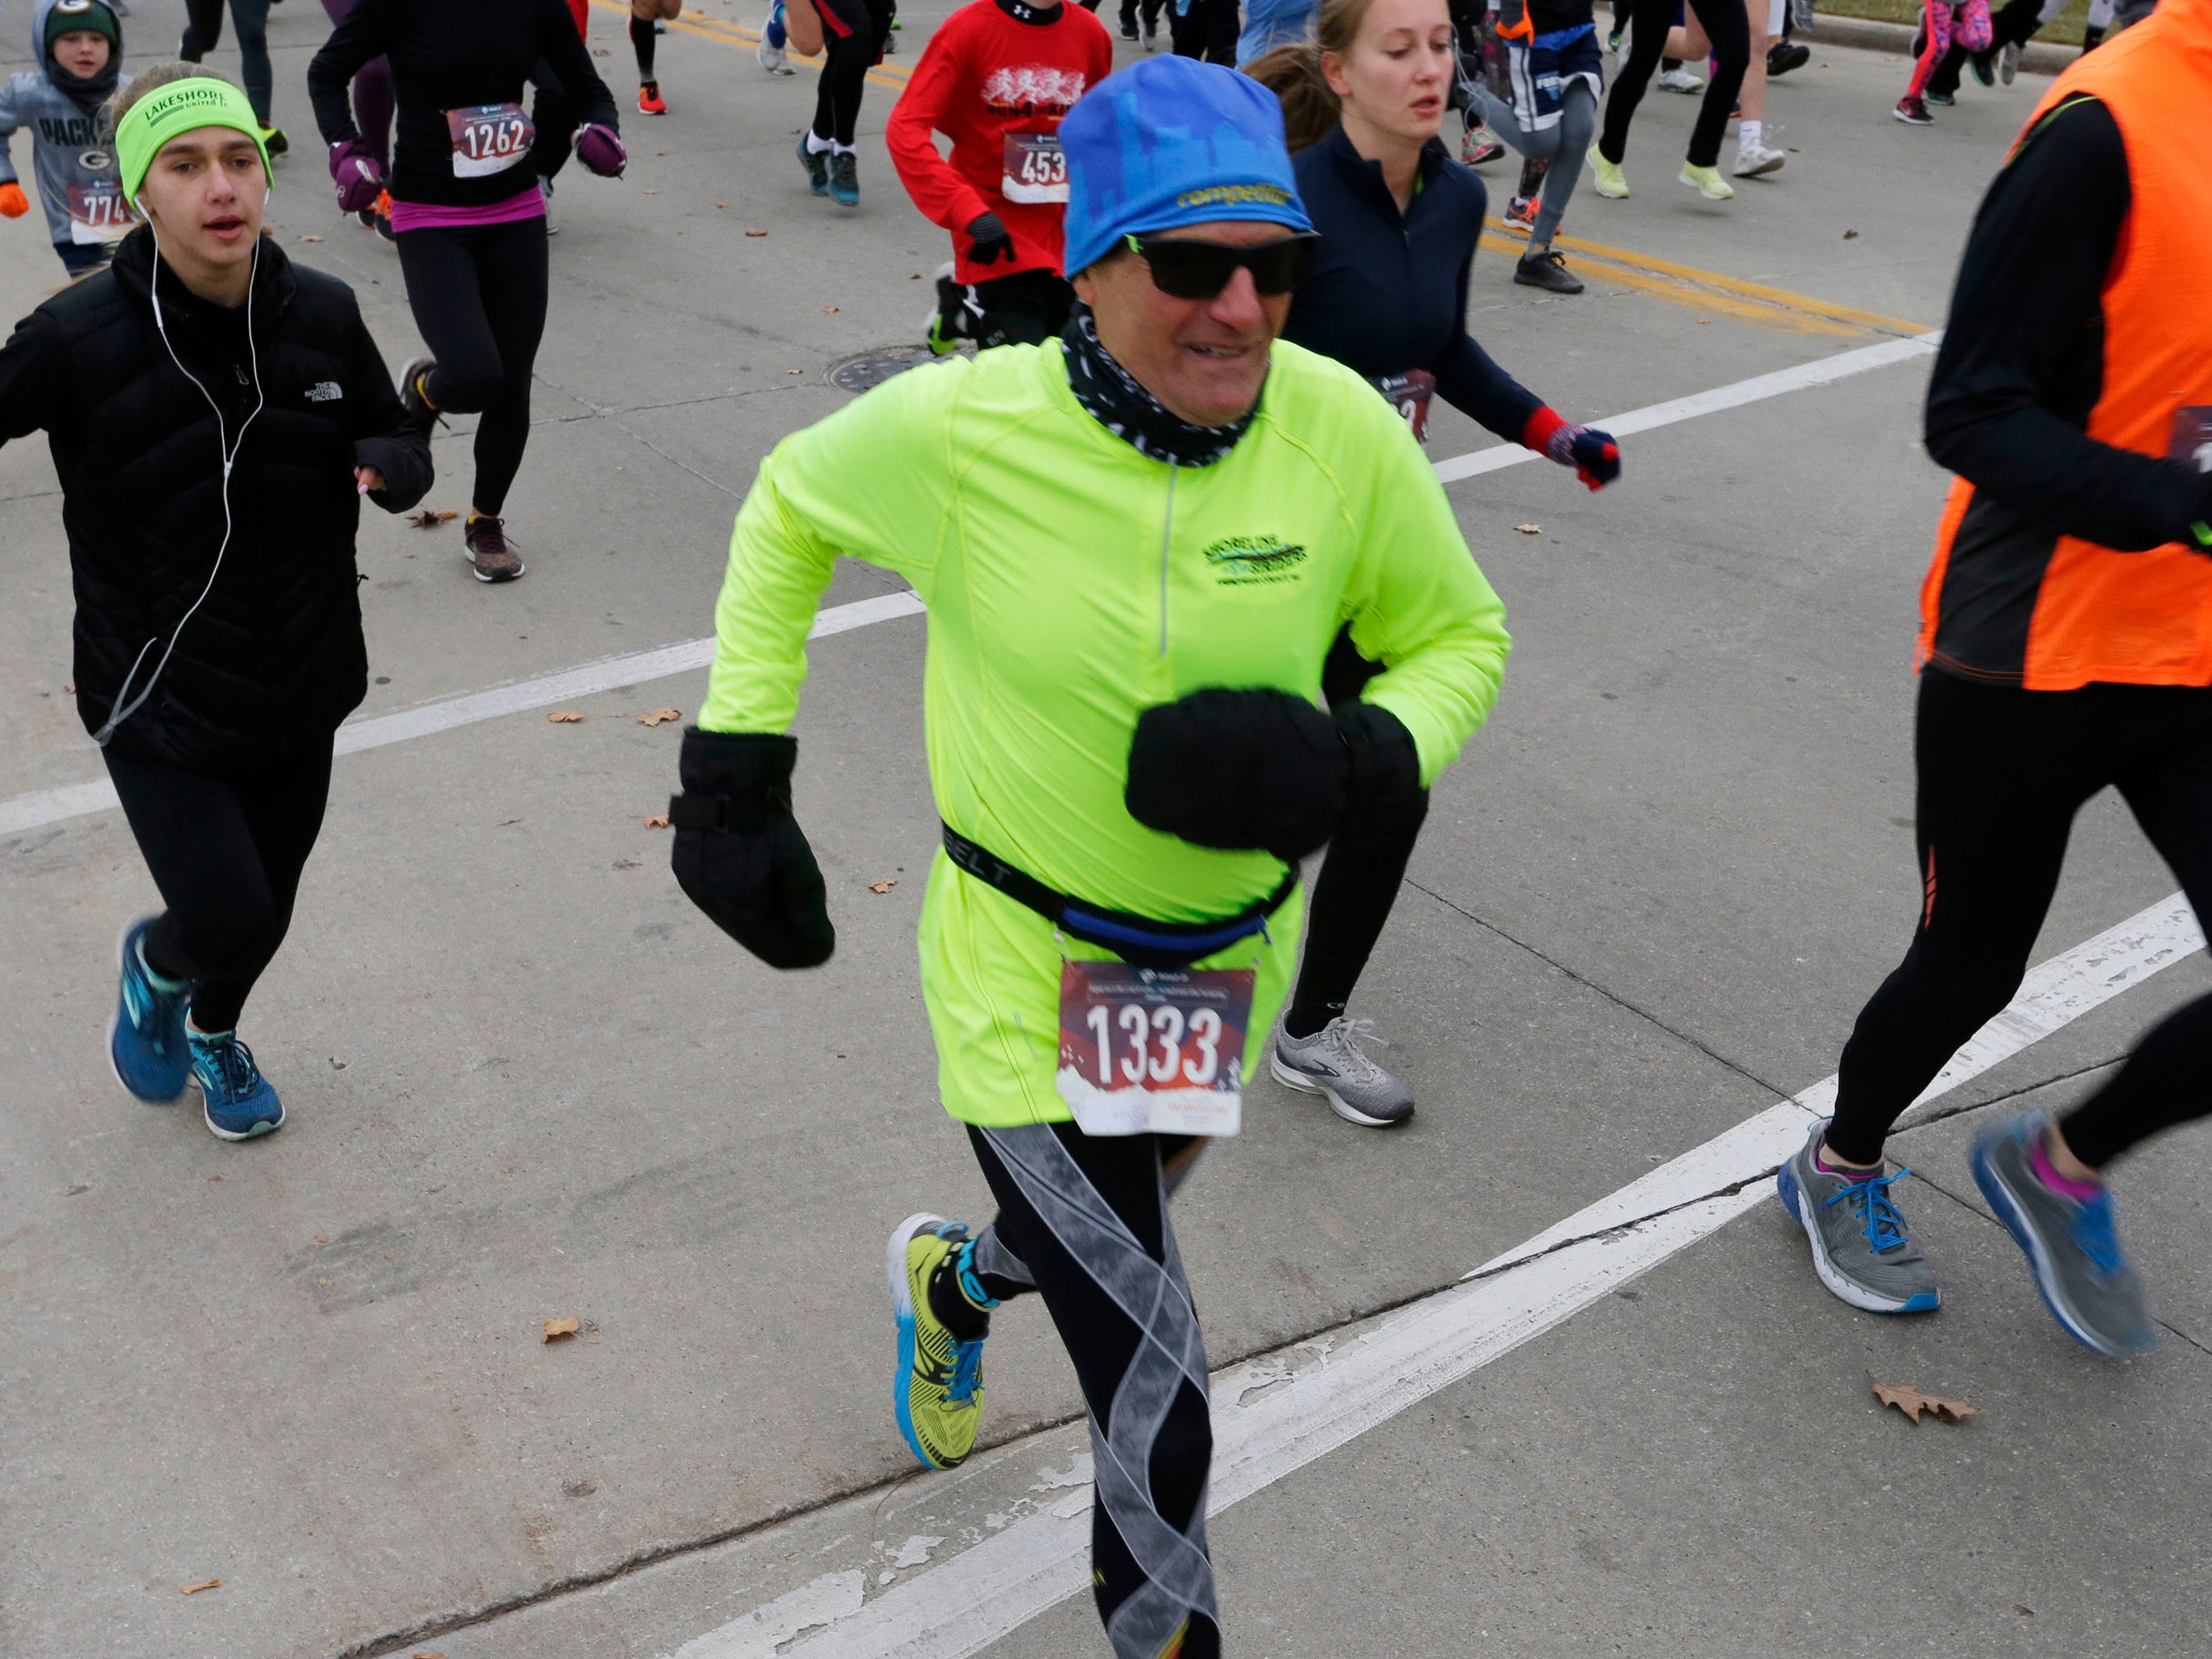 Sheboygan's well known runner Roy Pirrung (1333) at the start of the Doug Opel Run for the Kids, Thursday, November 22, 2018, in Sheboygan, Wis.